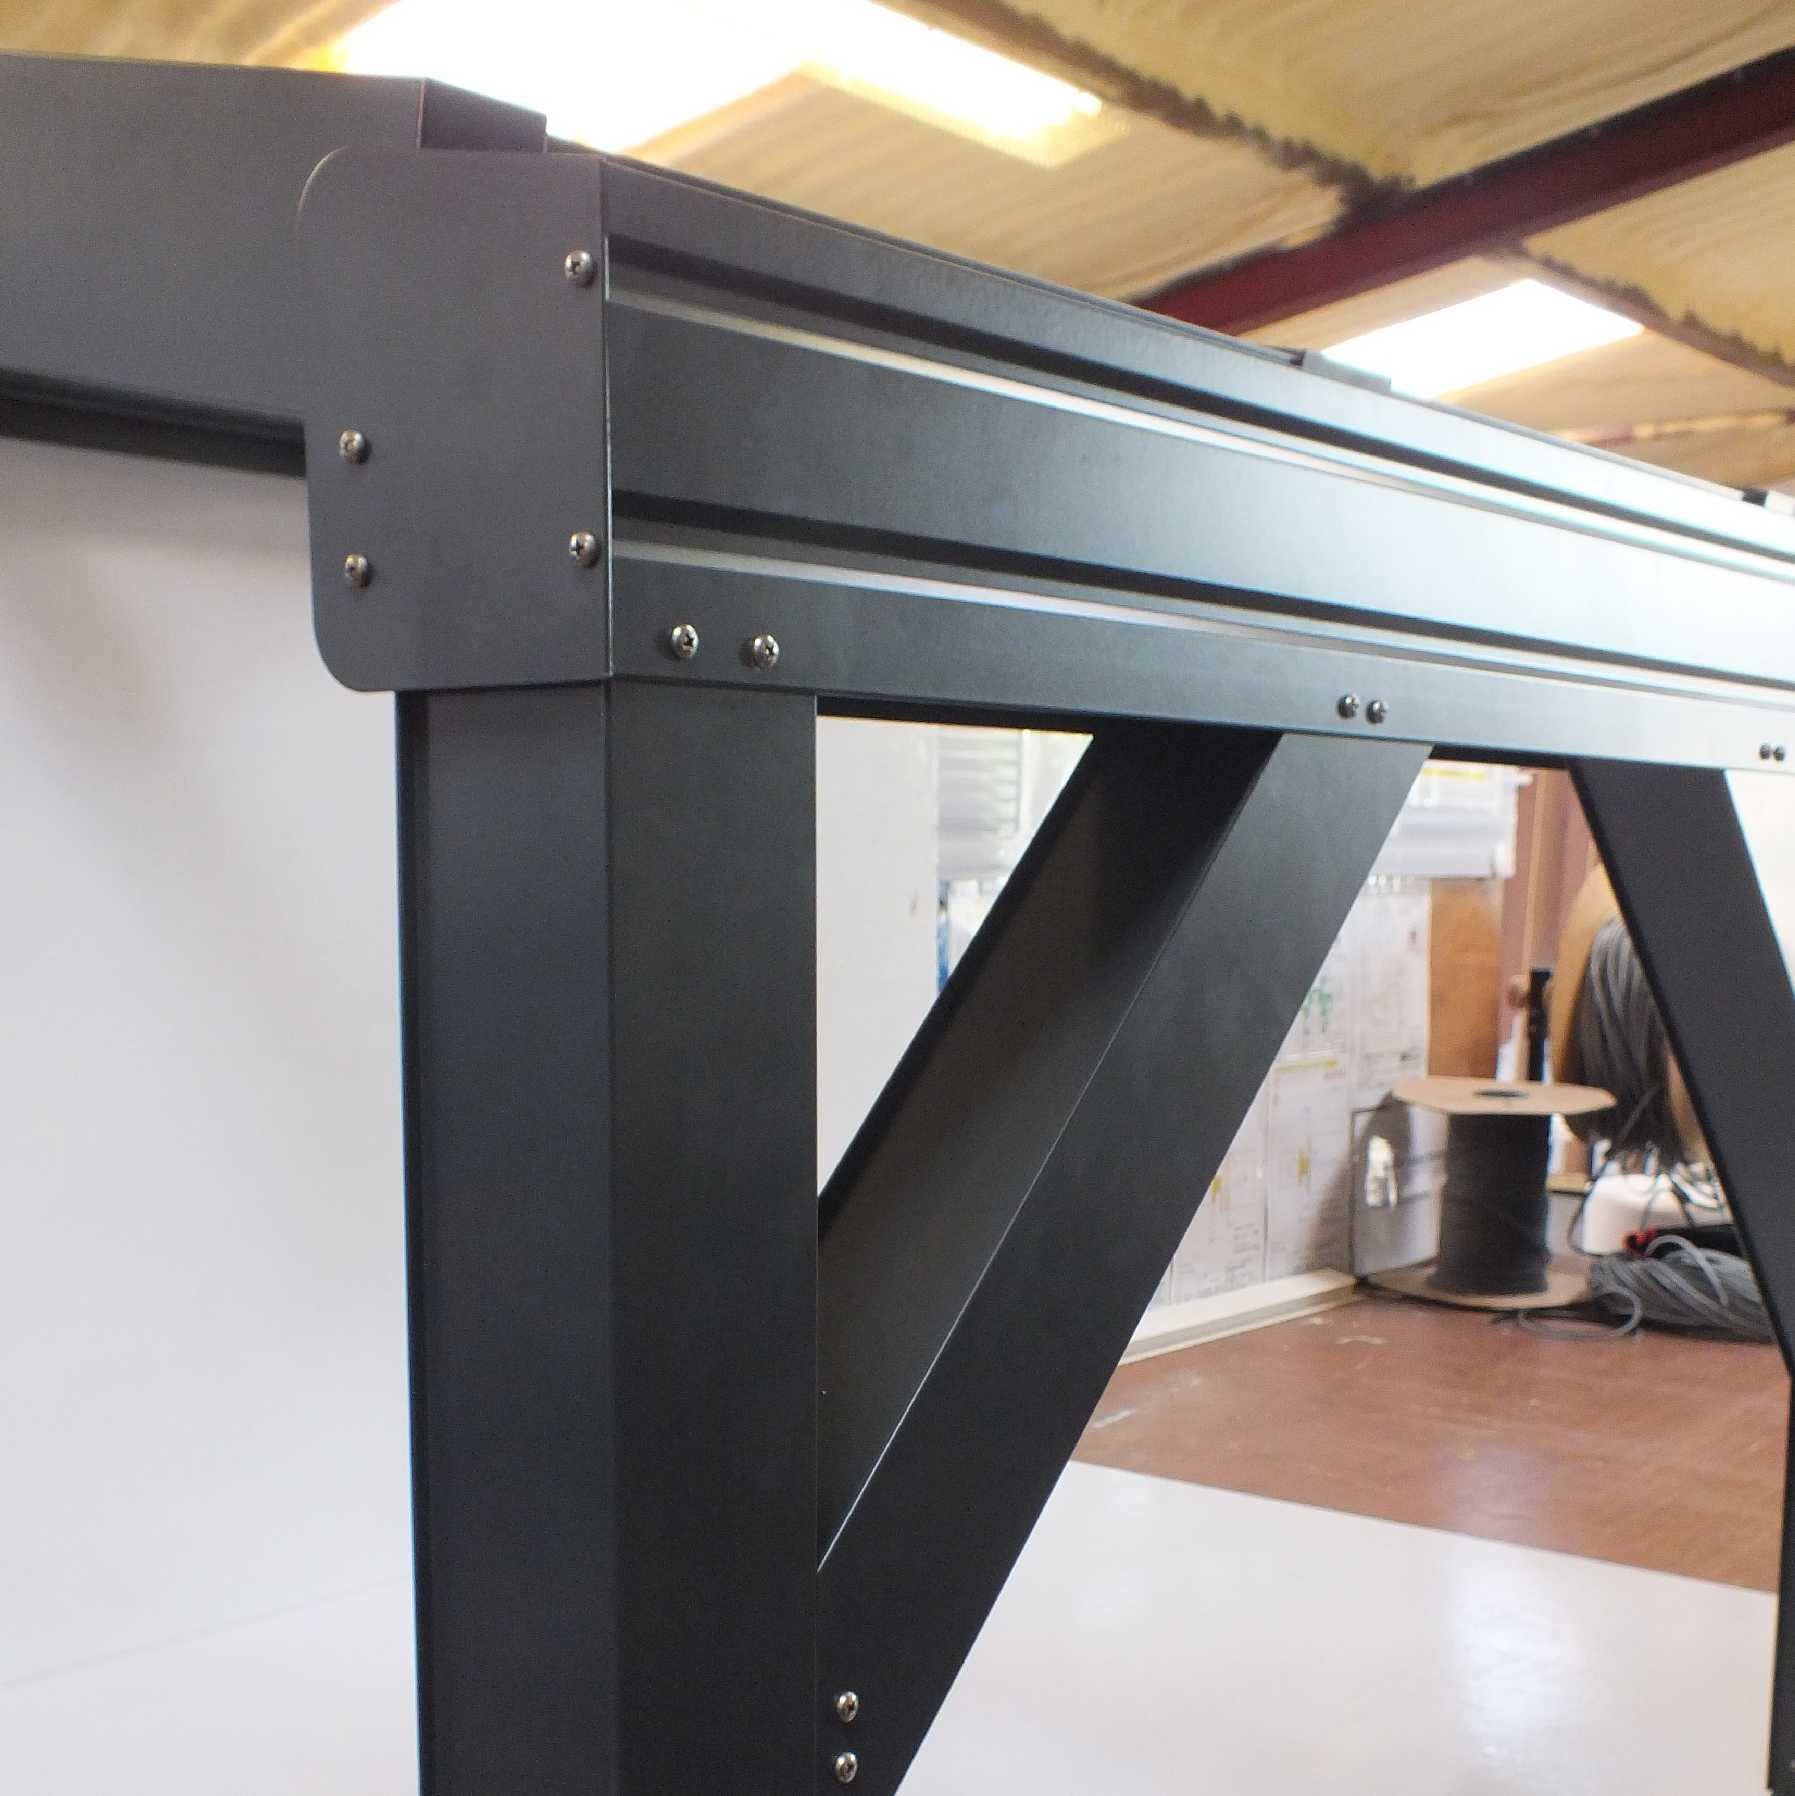 Omega Smart Lean-To Canopy, Anthracite Grey, UNGLAZED for 6mm Glazing - 5.6m (W) x 2.5m (P), (3) Supporting Posts from Omega Build